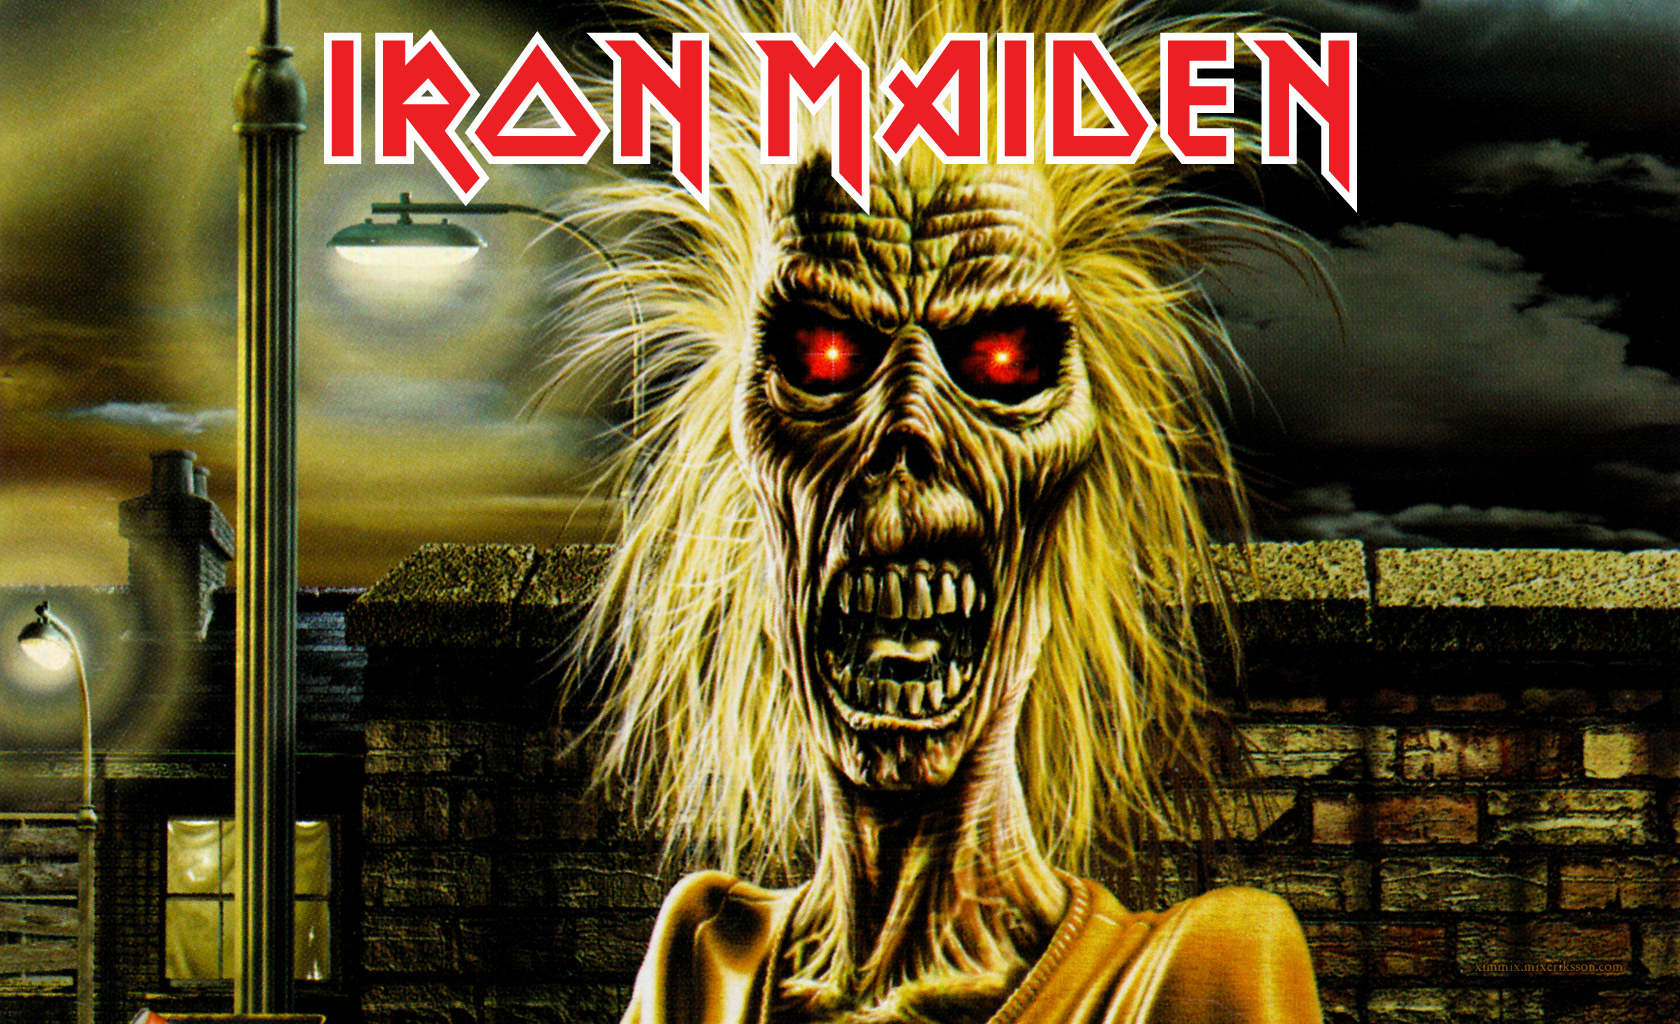 iron maiden wallpapers covers - photo #25